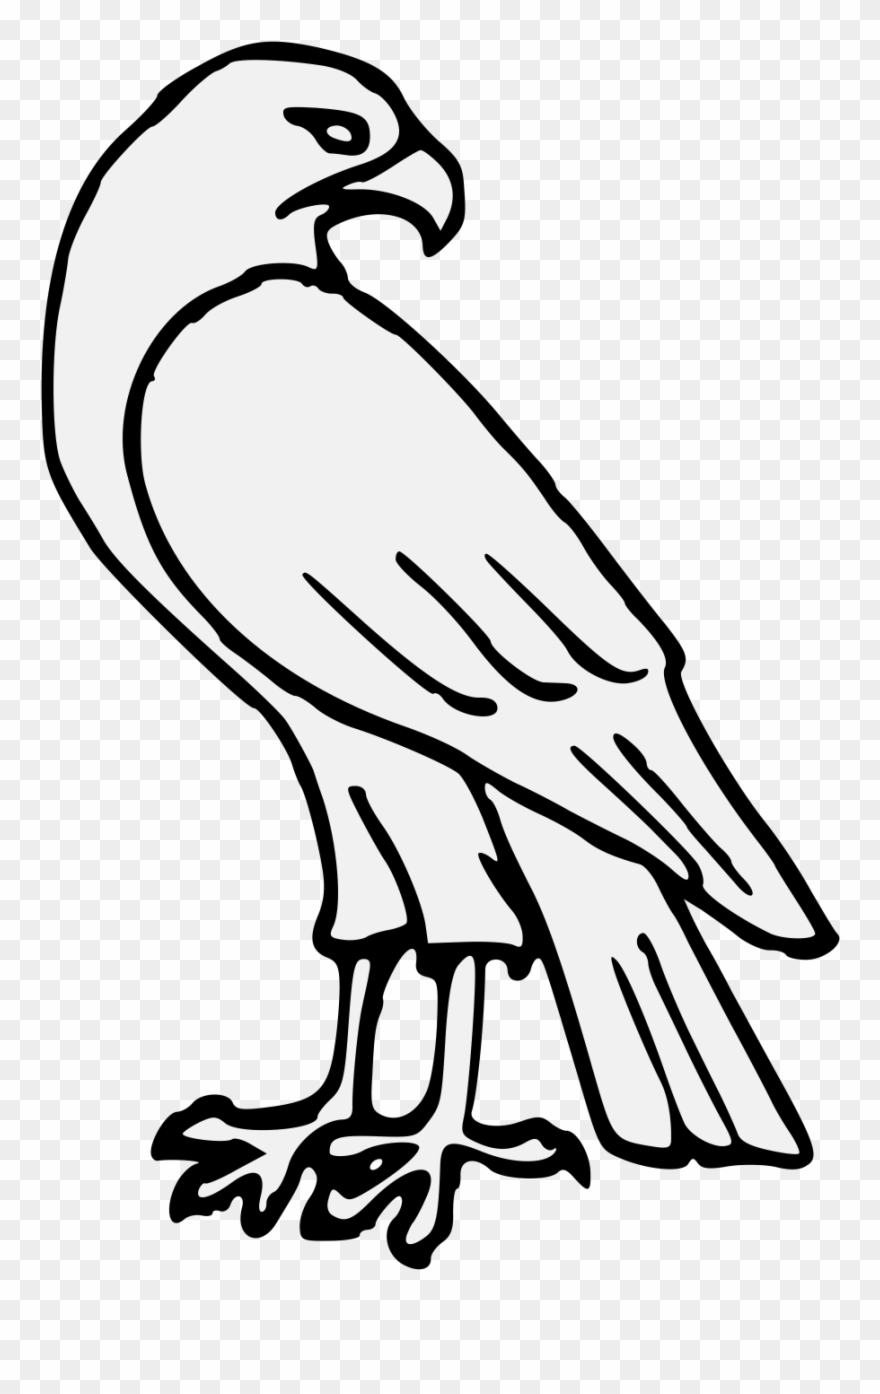 picture free download Falcon clipart. Pdf easy drawing pinclipart.